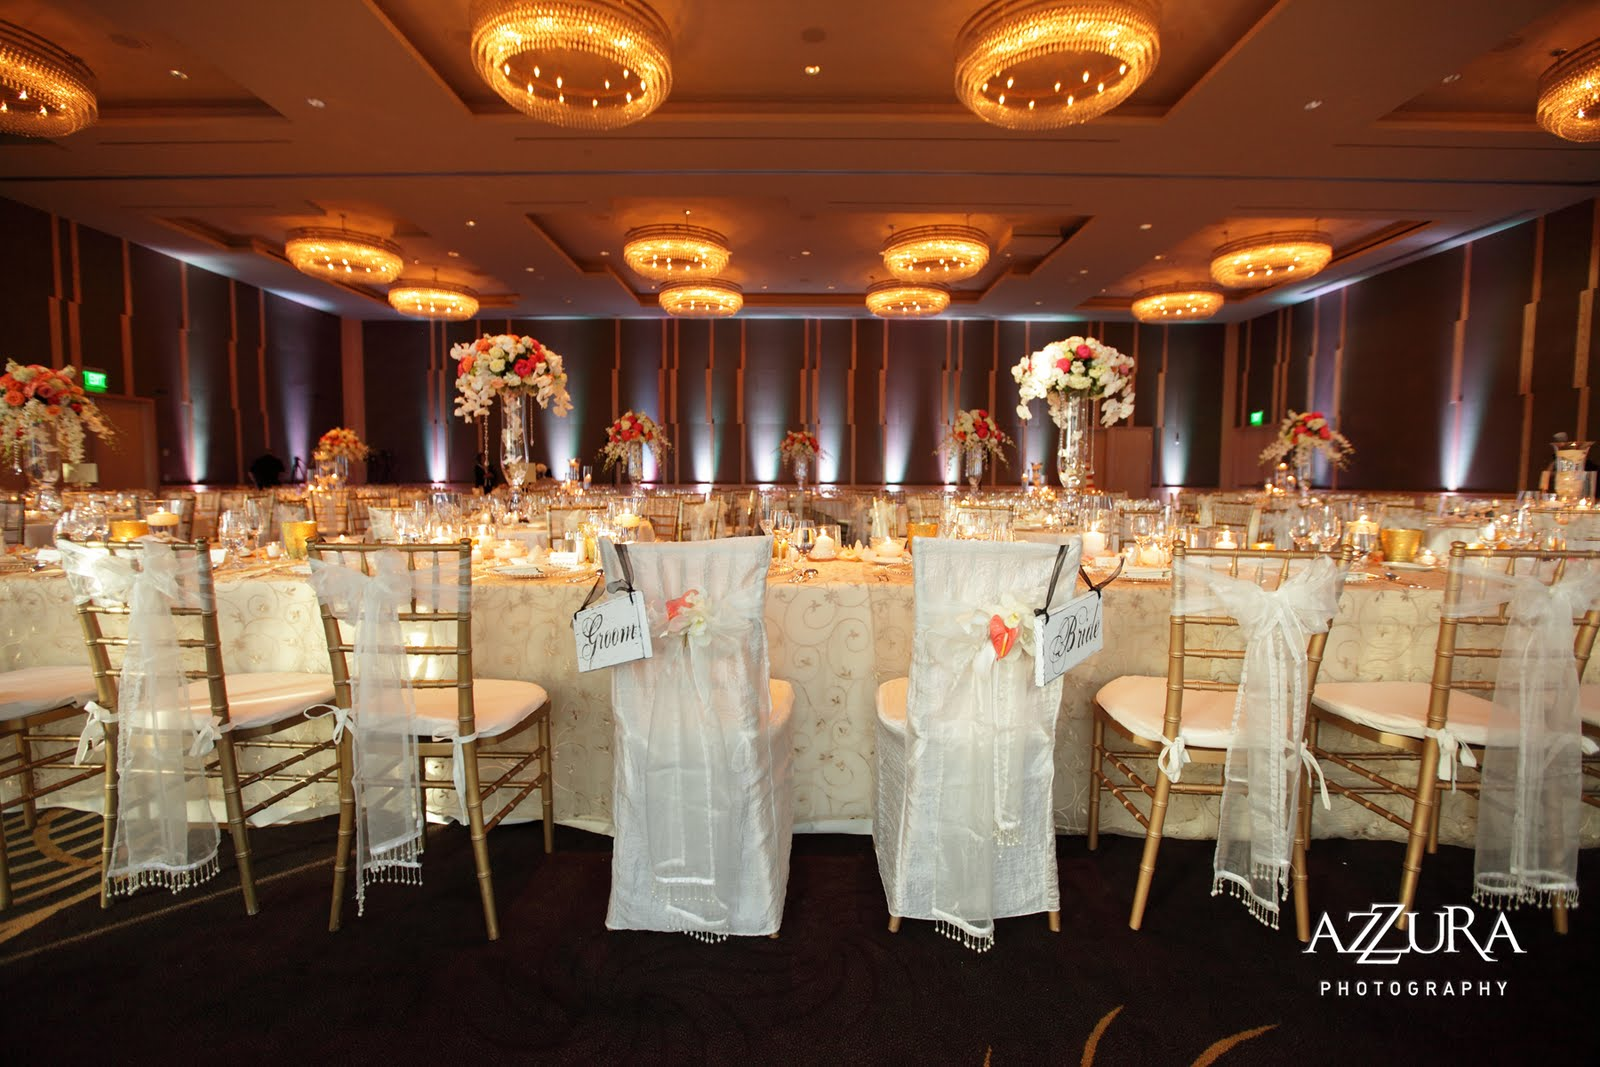 Down The Aisle Head Table Or Sweetheart Table: Amazing Real Wedding